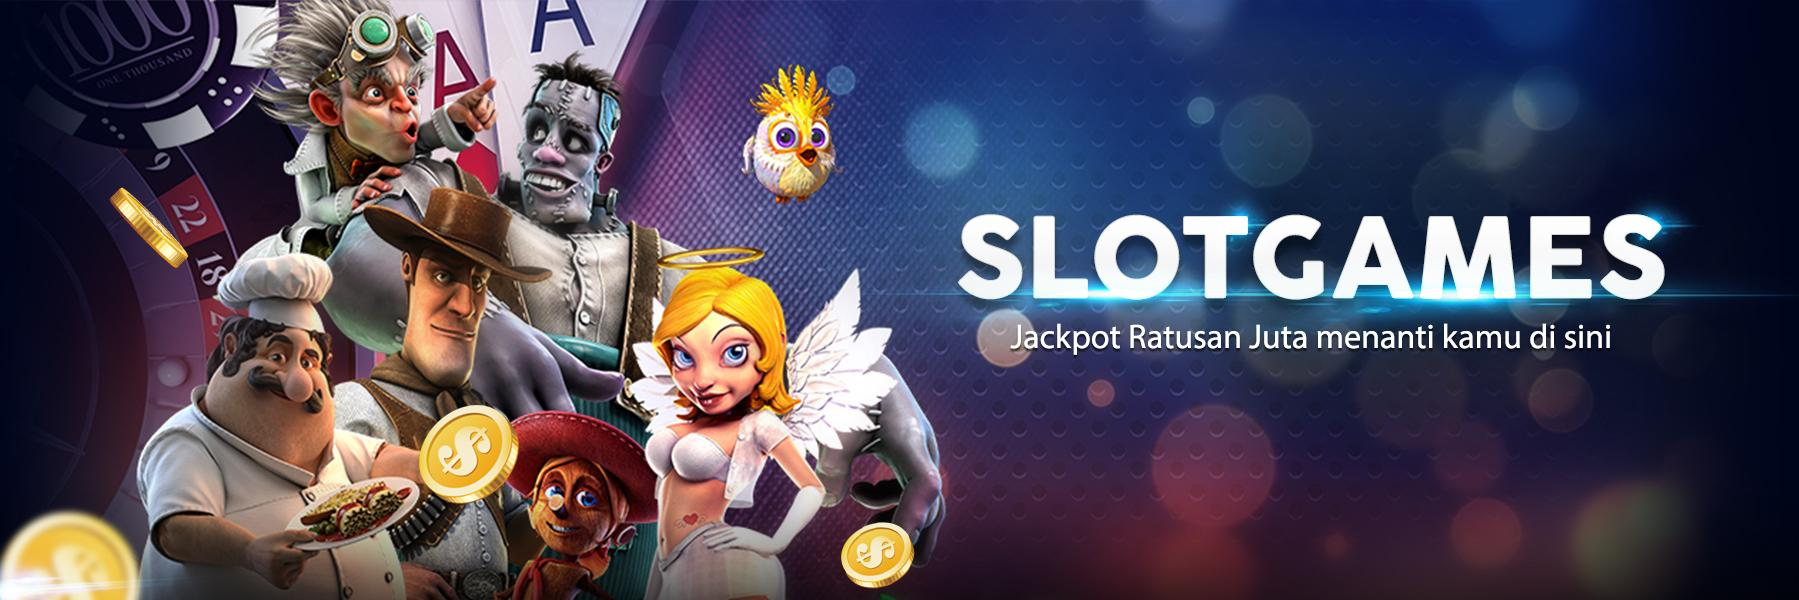 tips memainkan game judi slot online